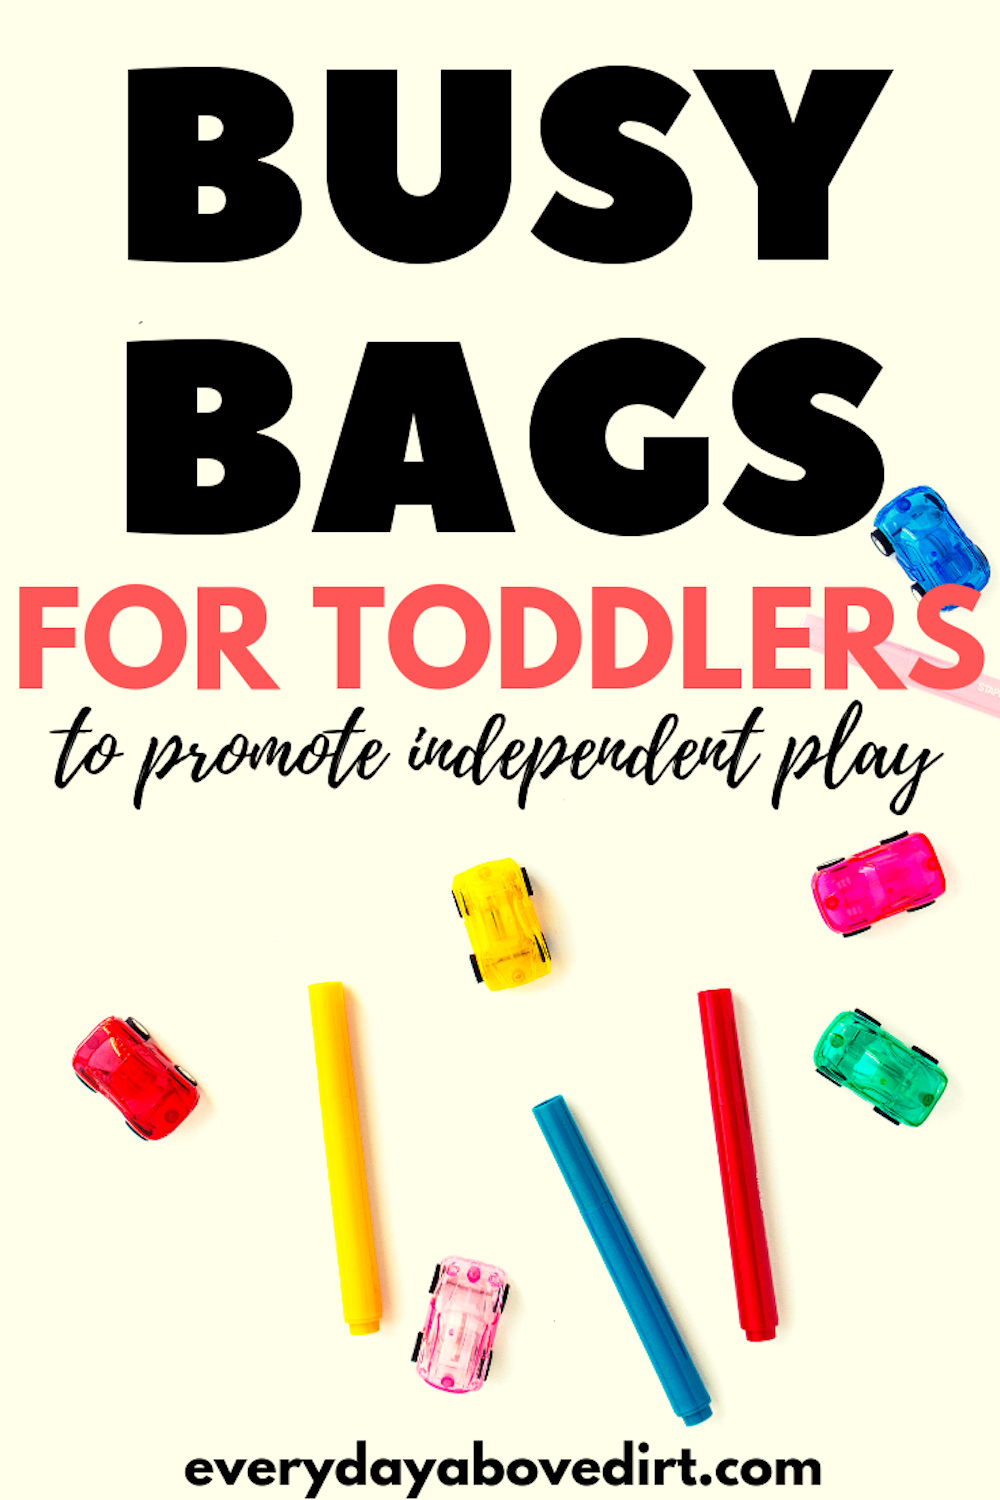 Busy Bags for Toddlers